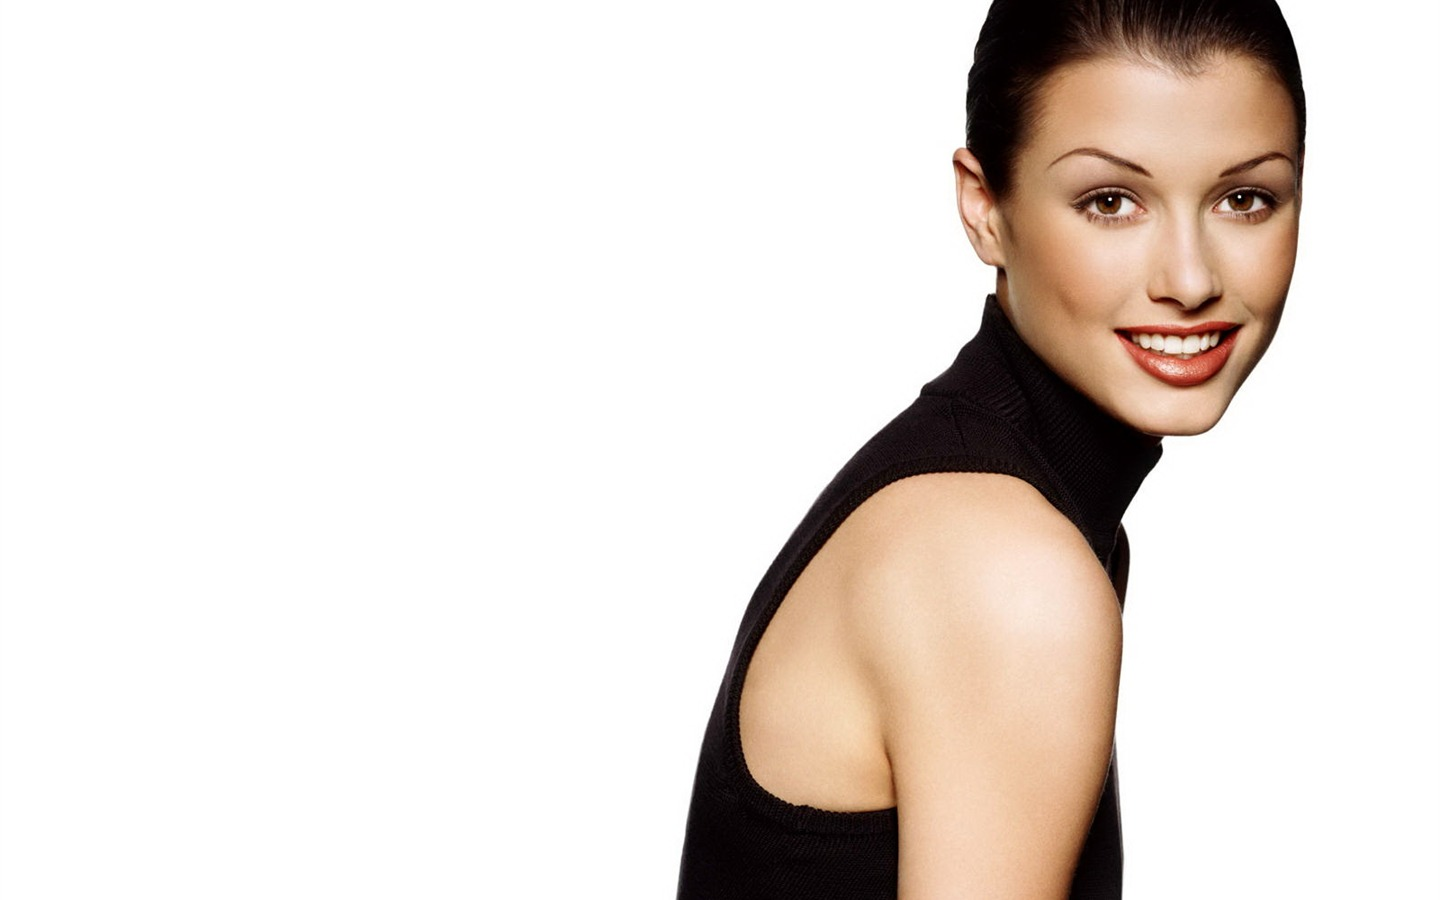 Bridget Moynahan #014 - 1440x900 Wallpapers Pictures Photos Images